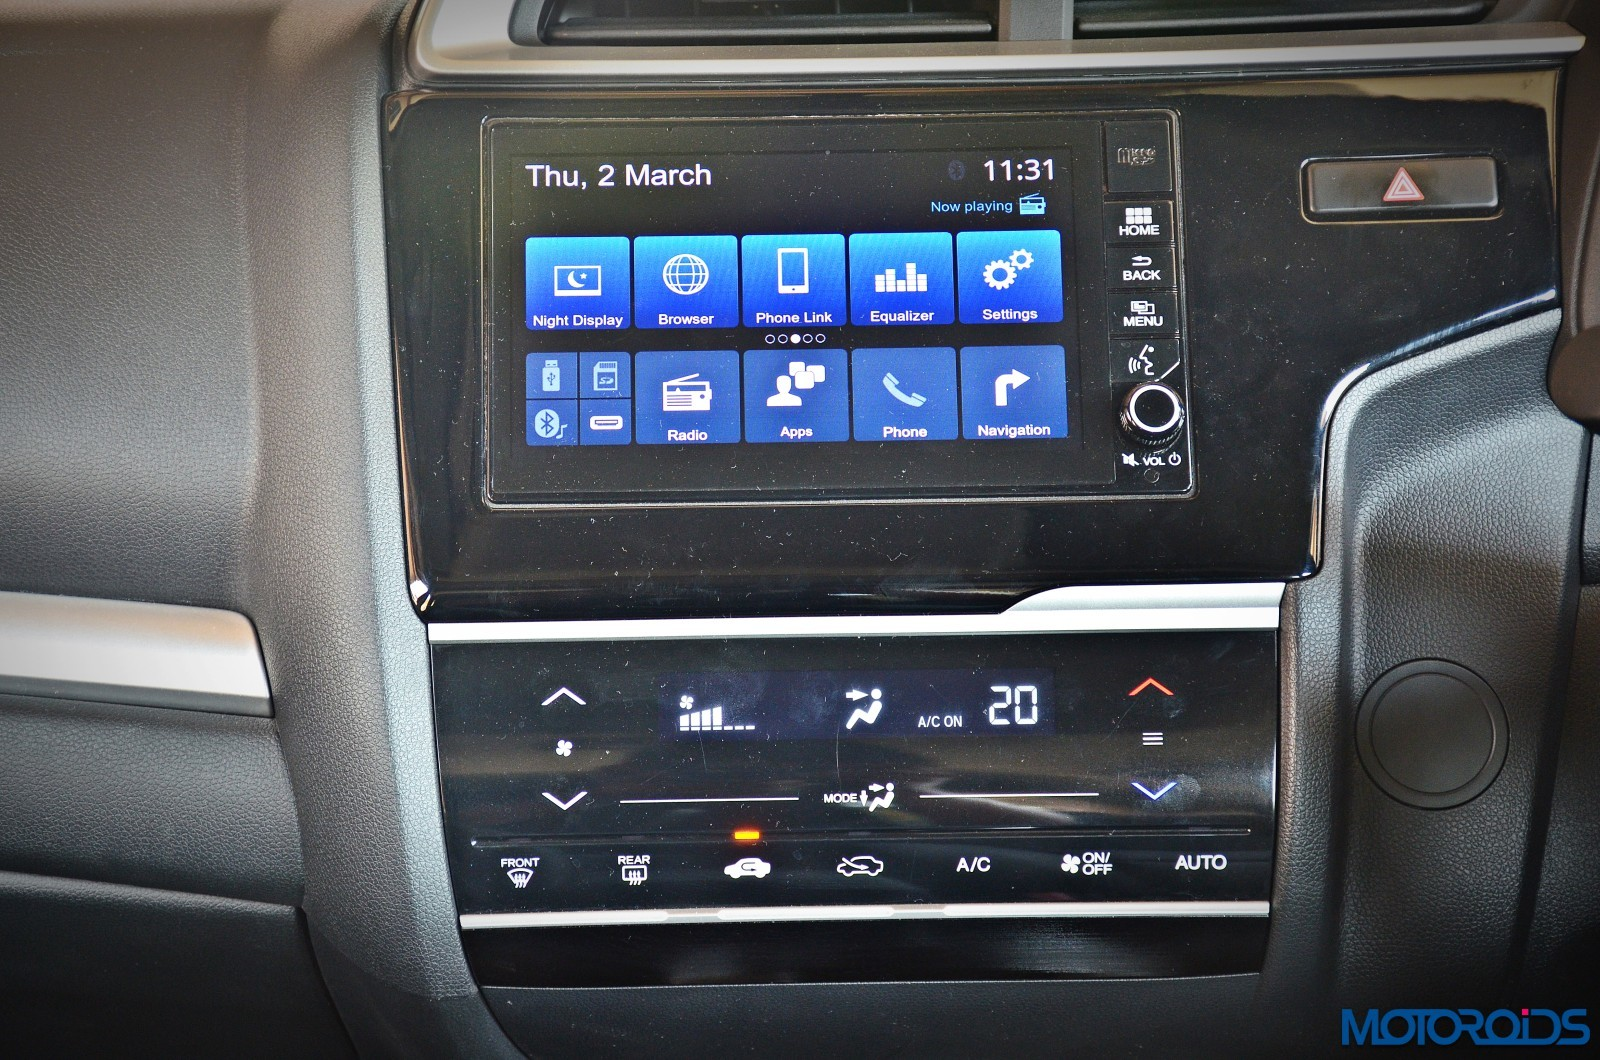 Honda-WR-V-Infotainment-system-music-audio-5